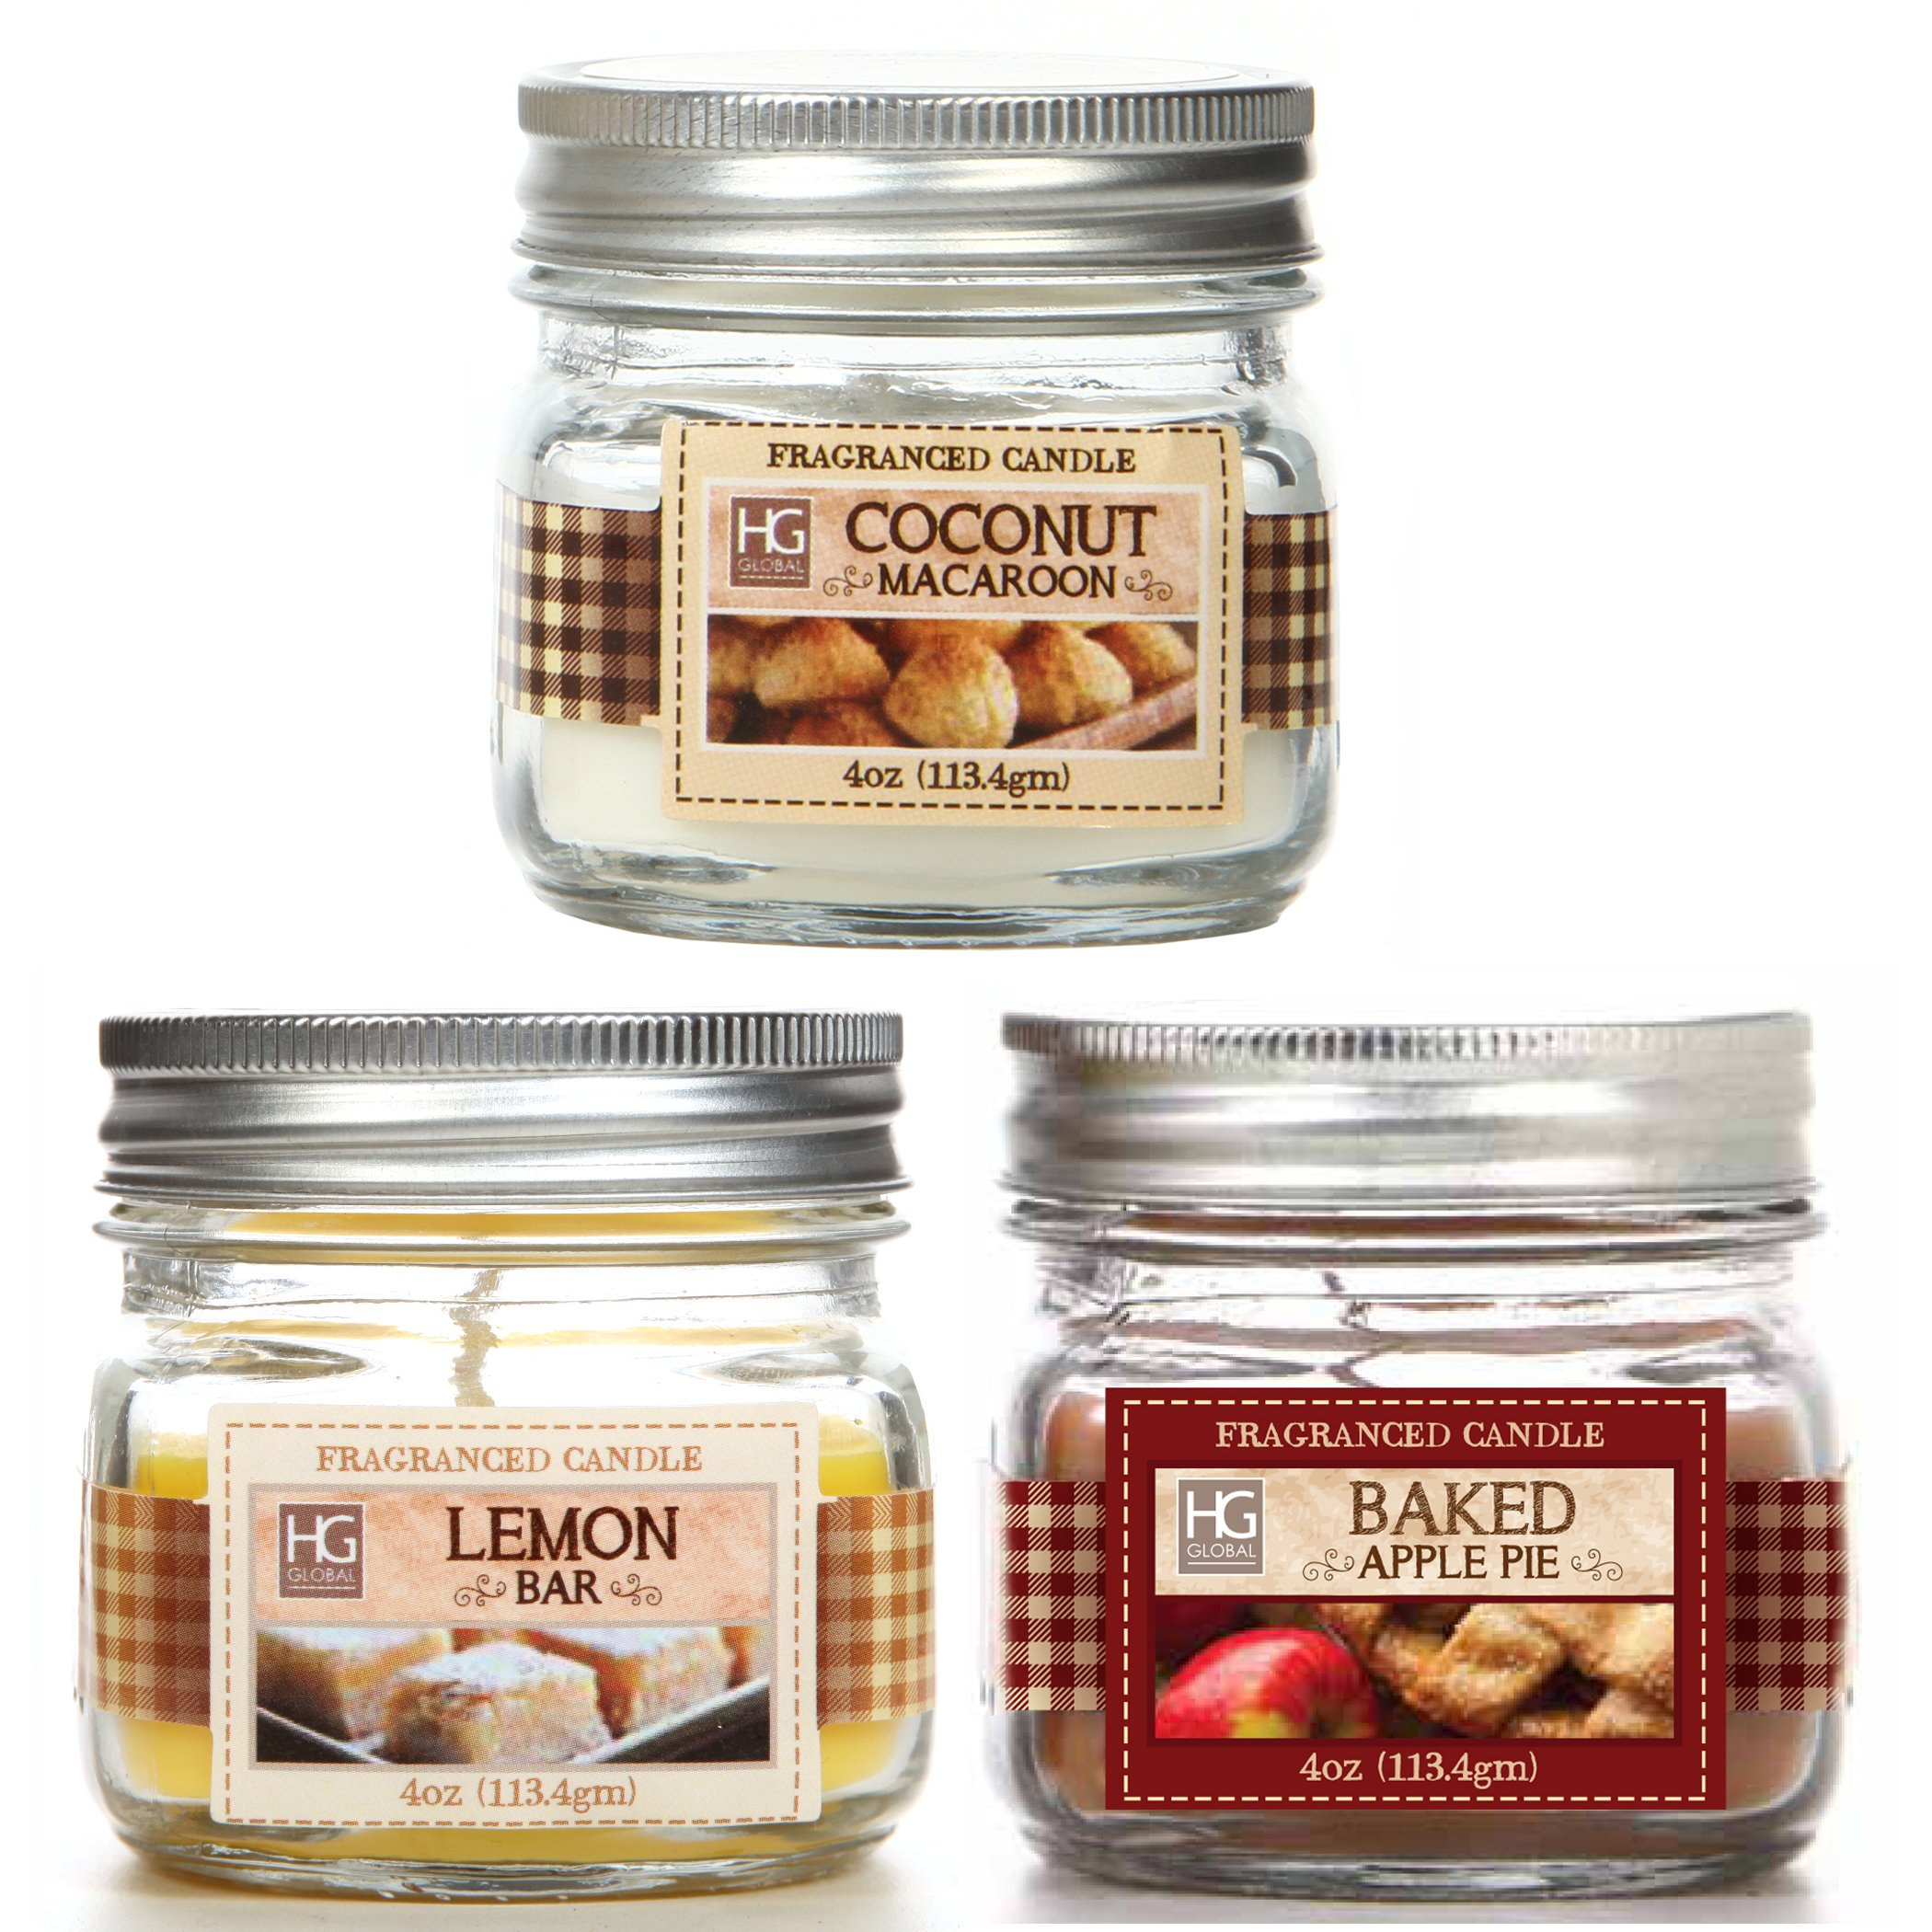 Hosley Set of 3 Jars Candles Baked Apple Pie, Coconut Macaroon, Lemon Bar Scents. 4 oz Each Hand Poured Wax Blend Infused with Essential Oil Ideal Gift for Wedding, Party, Spa O9